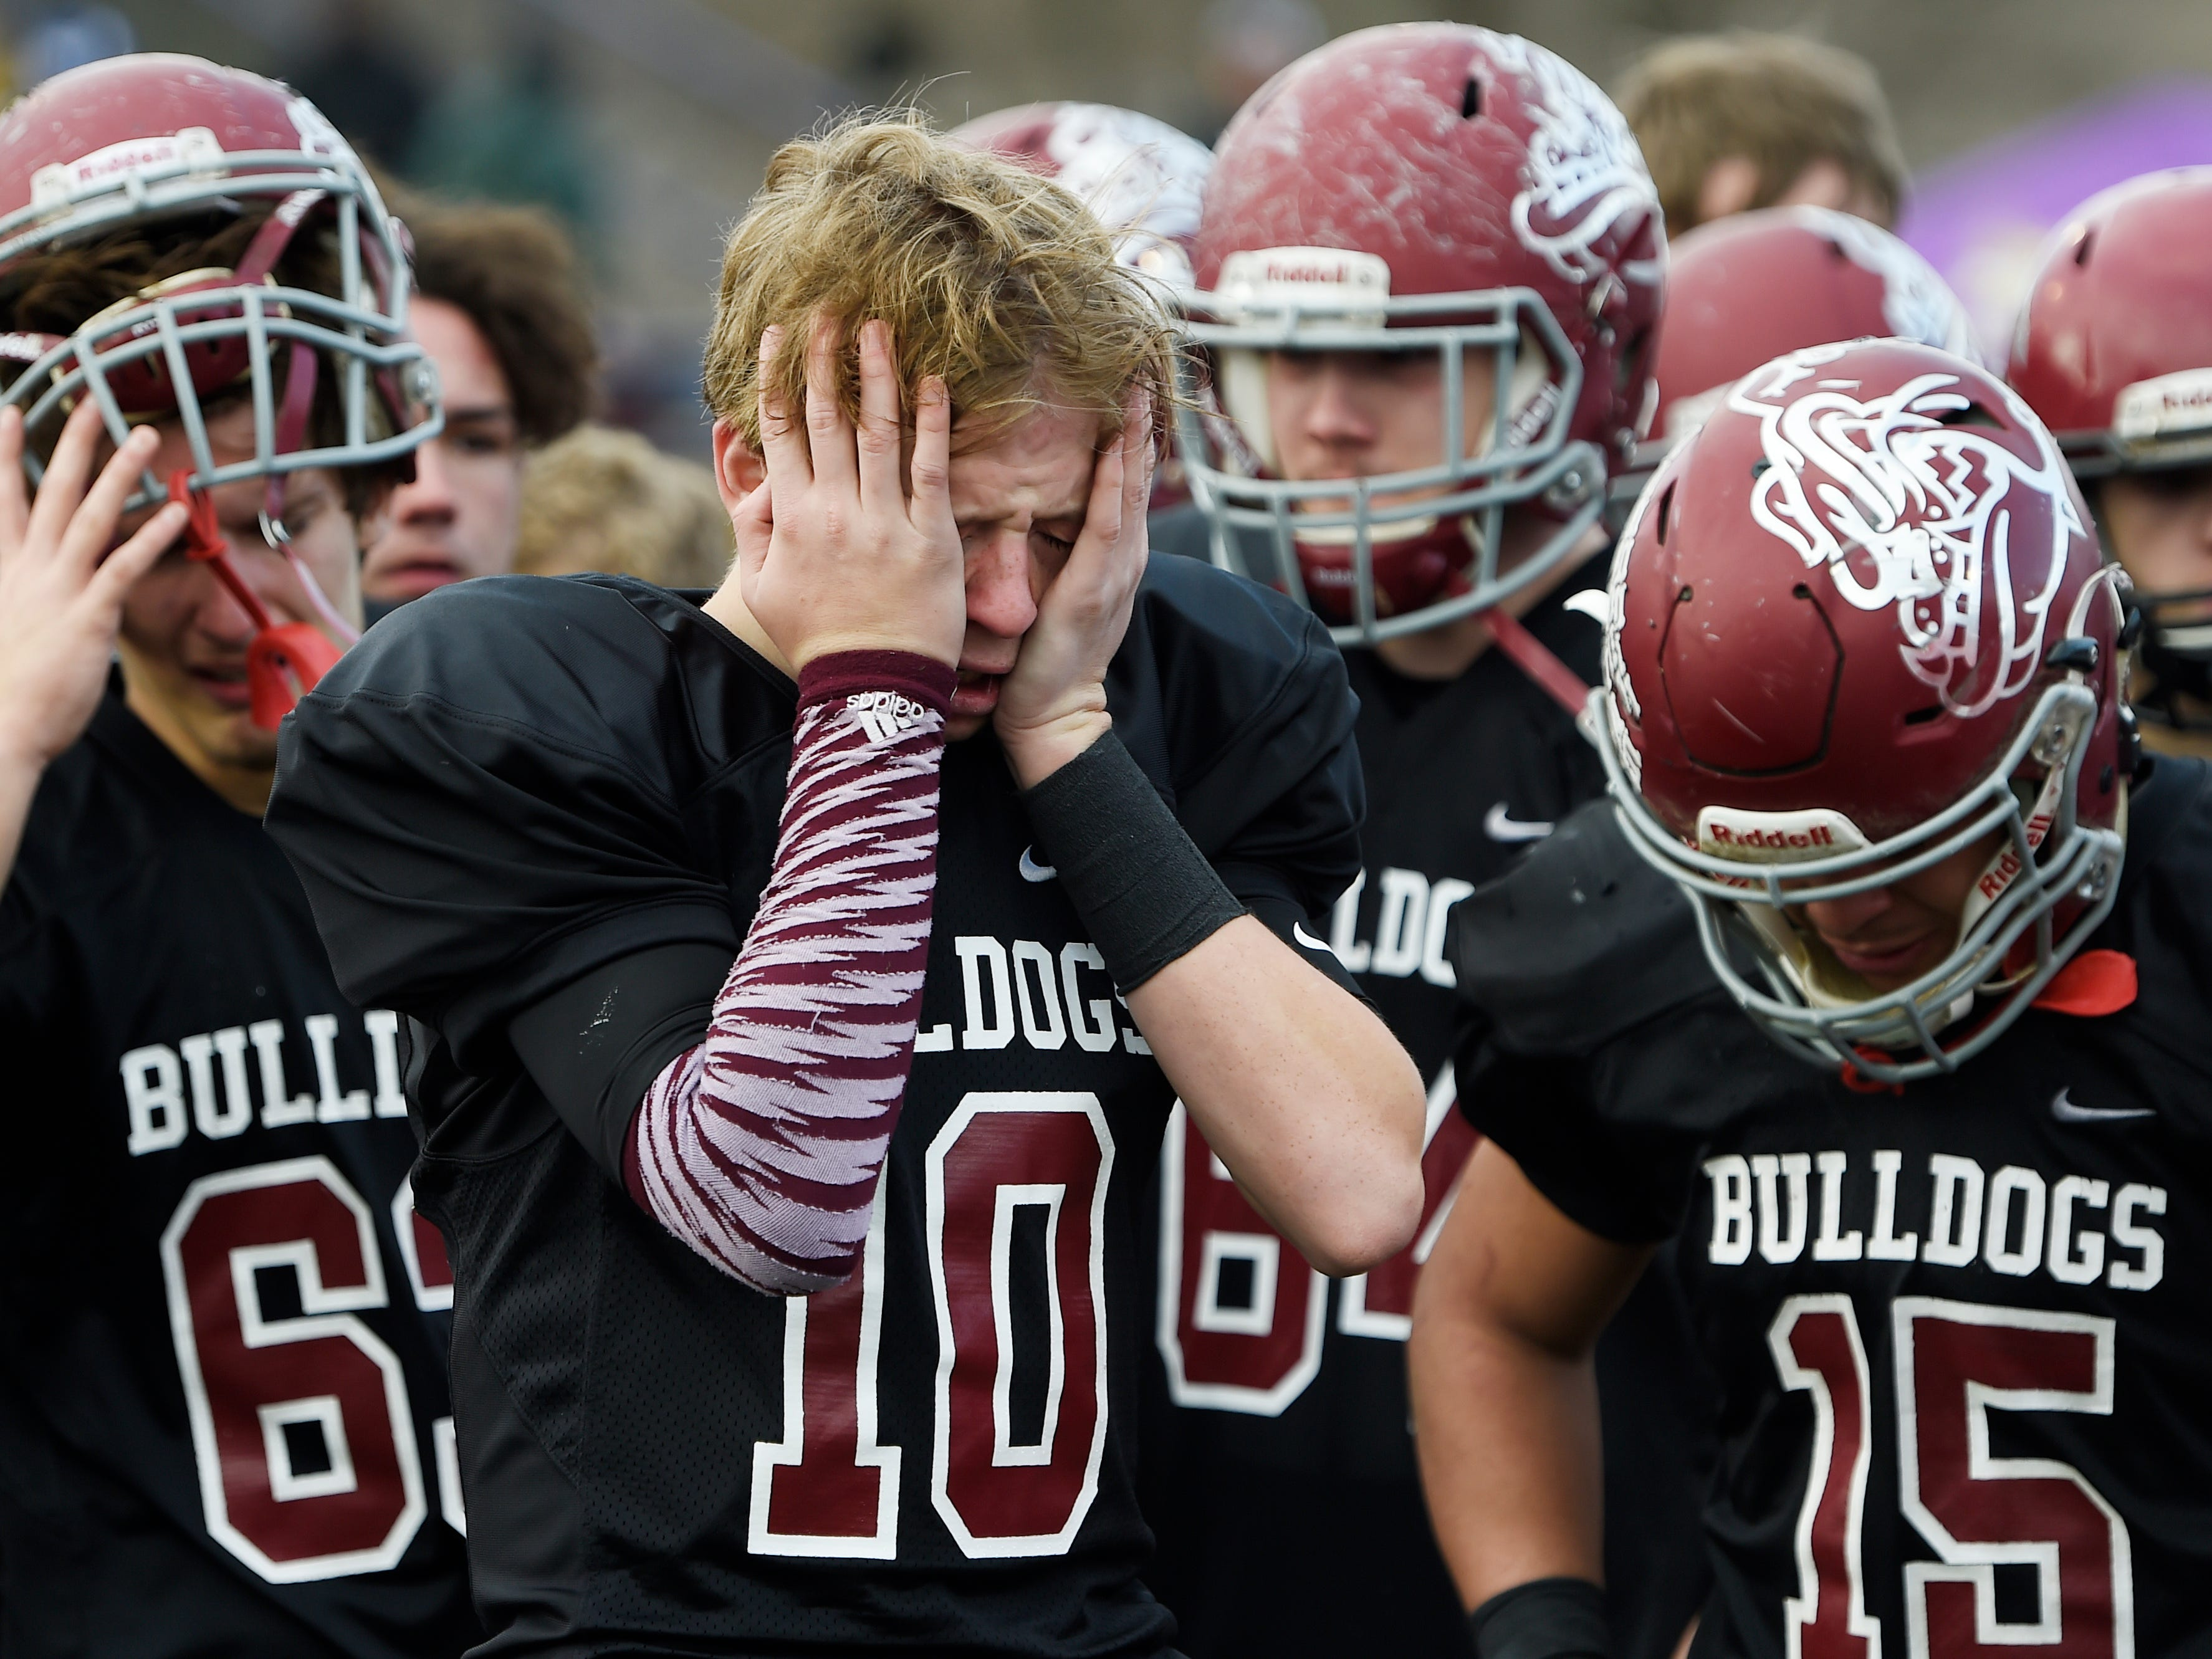 Cornersville players react to the team's 7-6 loss in the Class I-A BlueCross Bowl state championship at Tennessee Tech's Tucker Stadium in Cookeville, Tenn., on Saturday, Dec. 1, 2018.